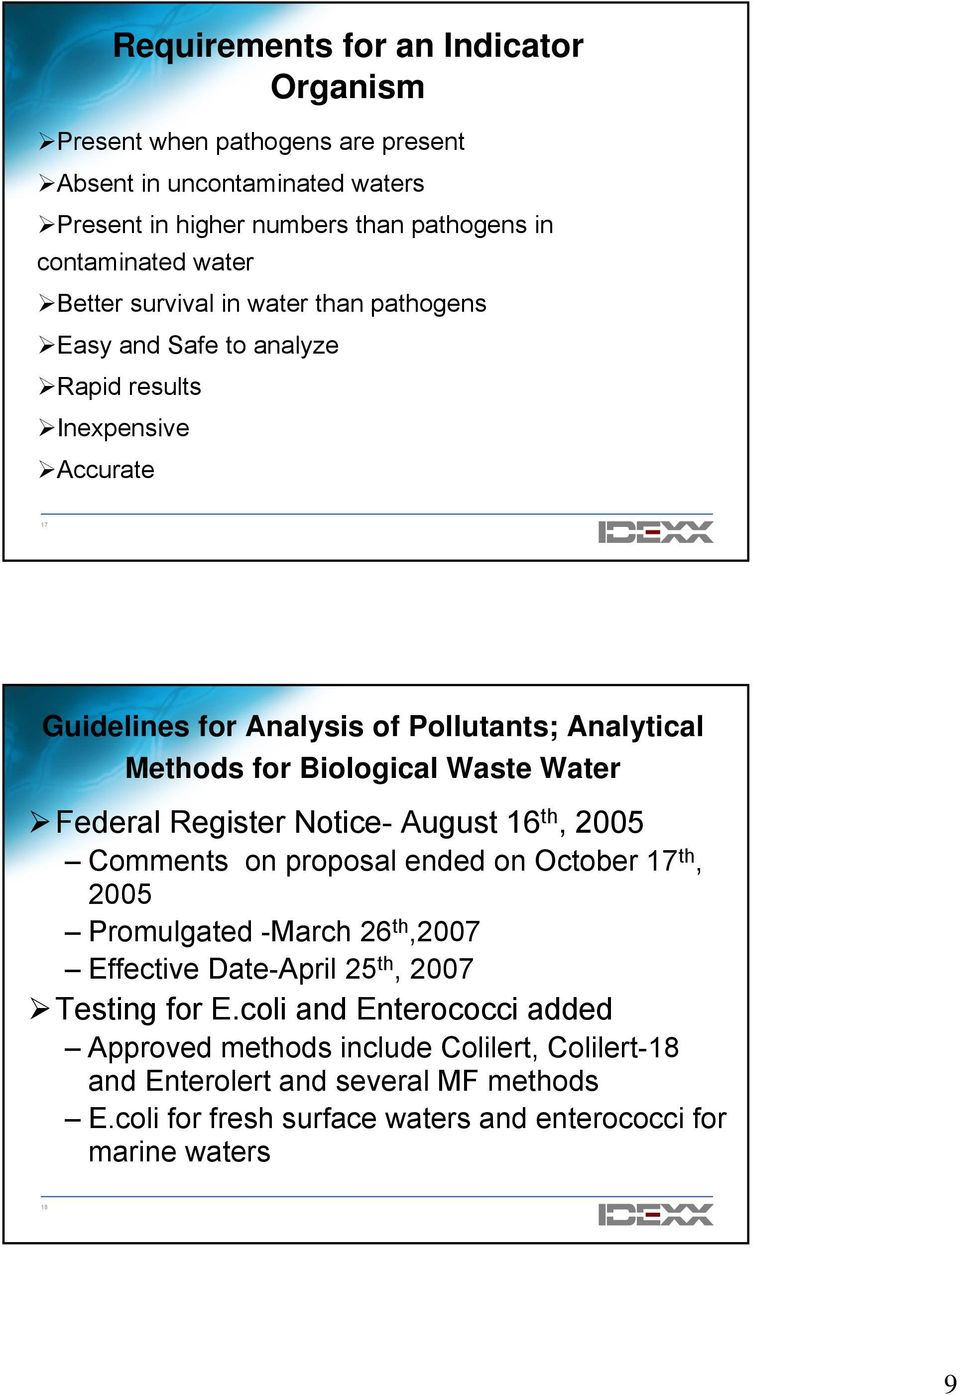 Testing Waste Water for Fecal Coliforms and/or E coli using